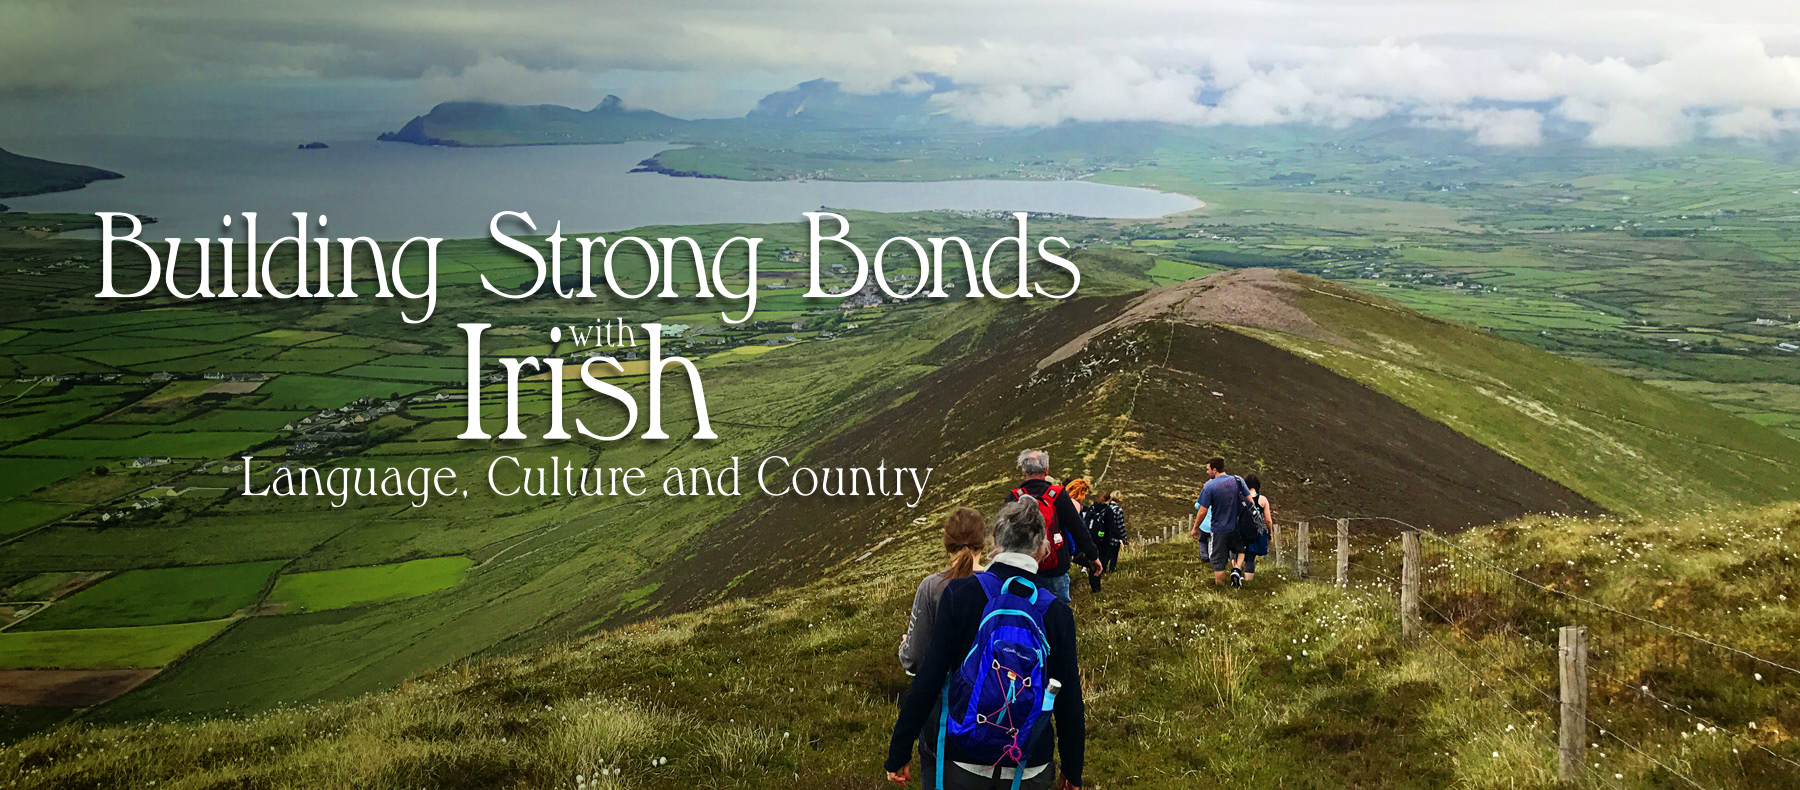 Building strong bonds with Irish language, culture and country